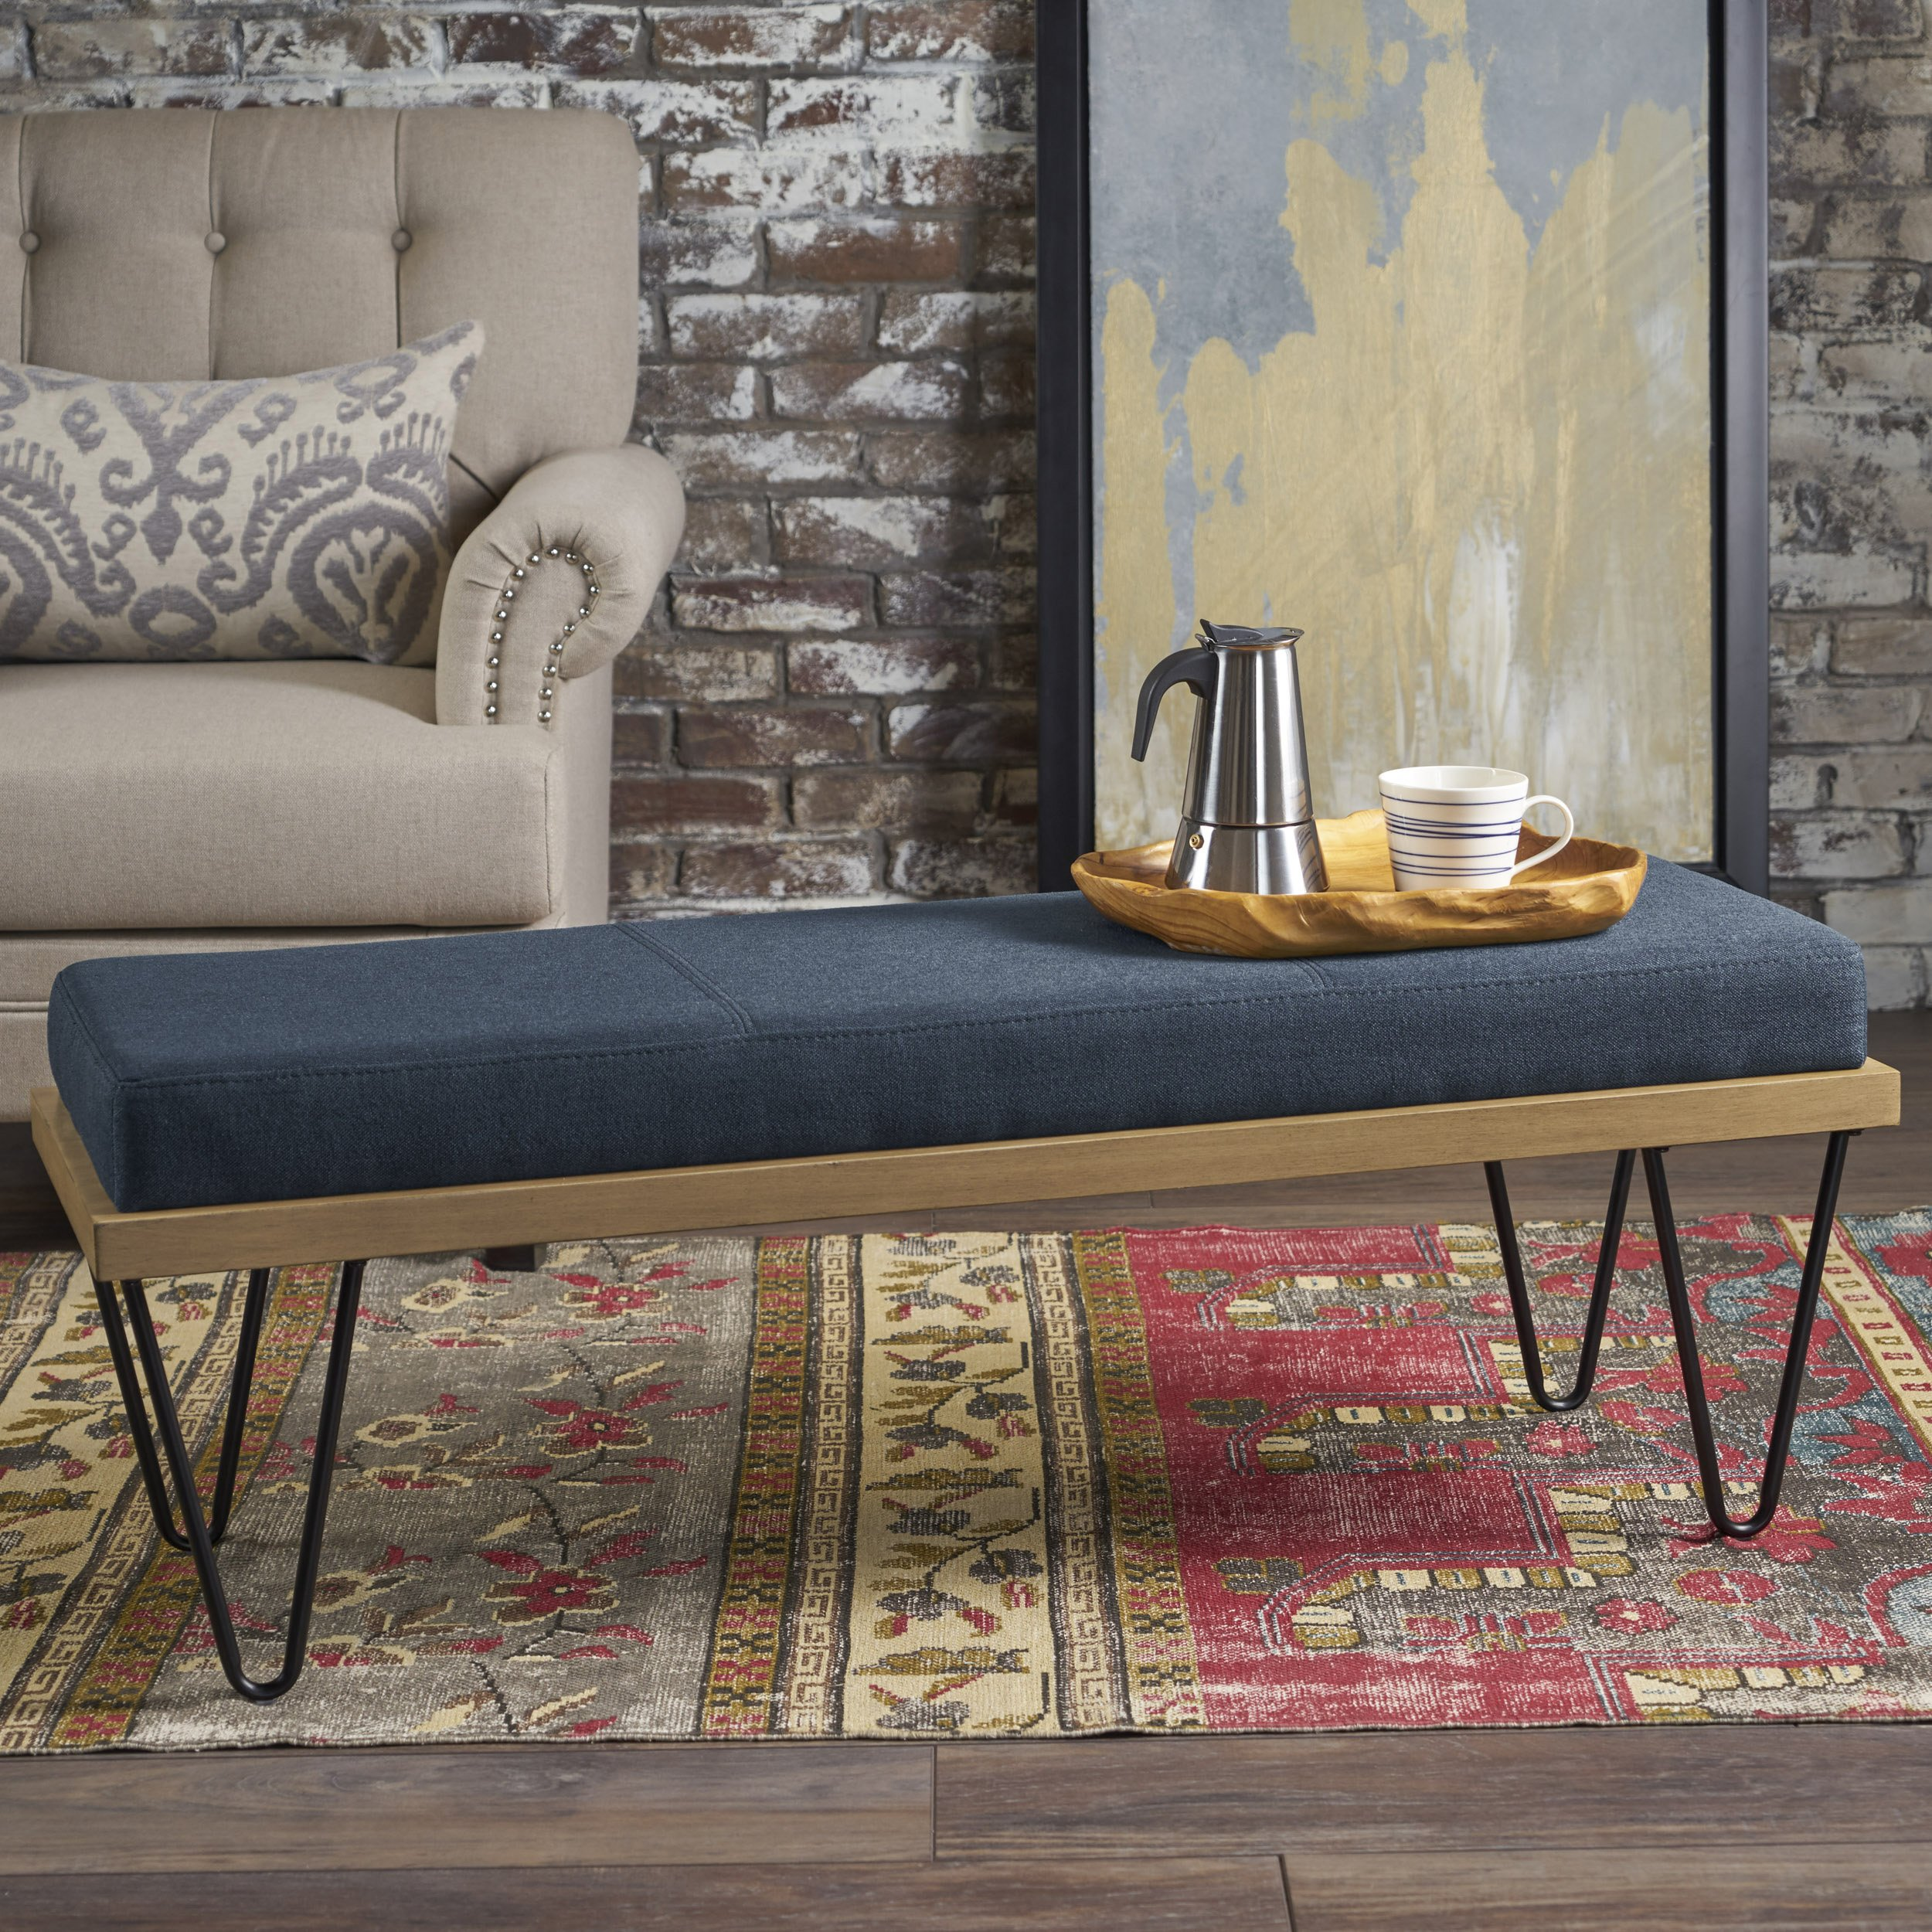 Christopher Knight Home Elaina Bench | Perfect for Dining Table or Entry Way | Danish, Minimal, Mid Century Modern Design | Hairpin Leg | Fabric in Navy Blue by Christopher Knight Home